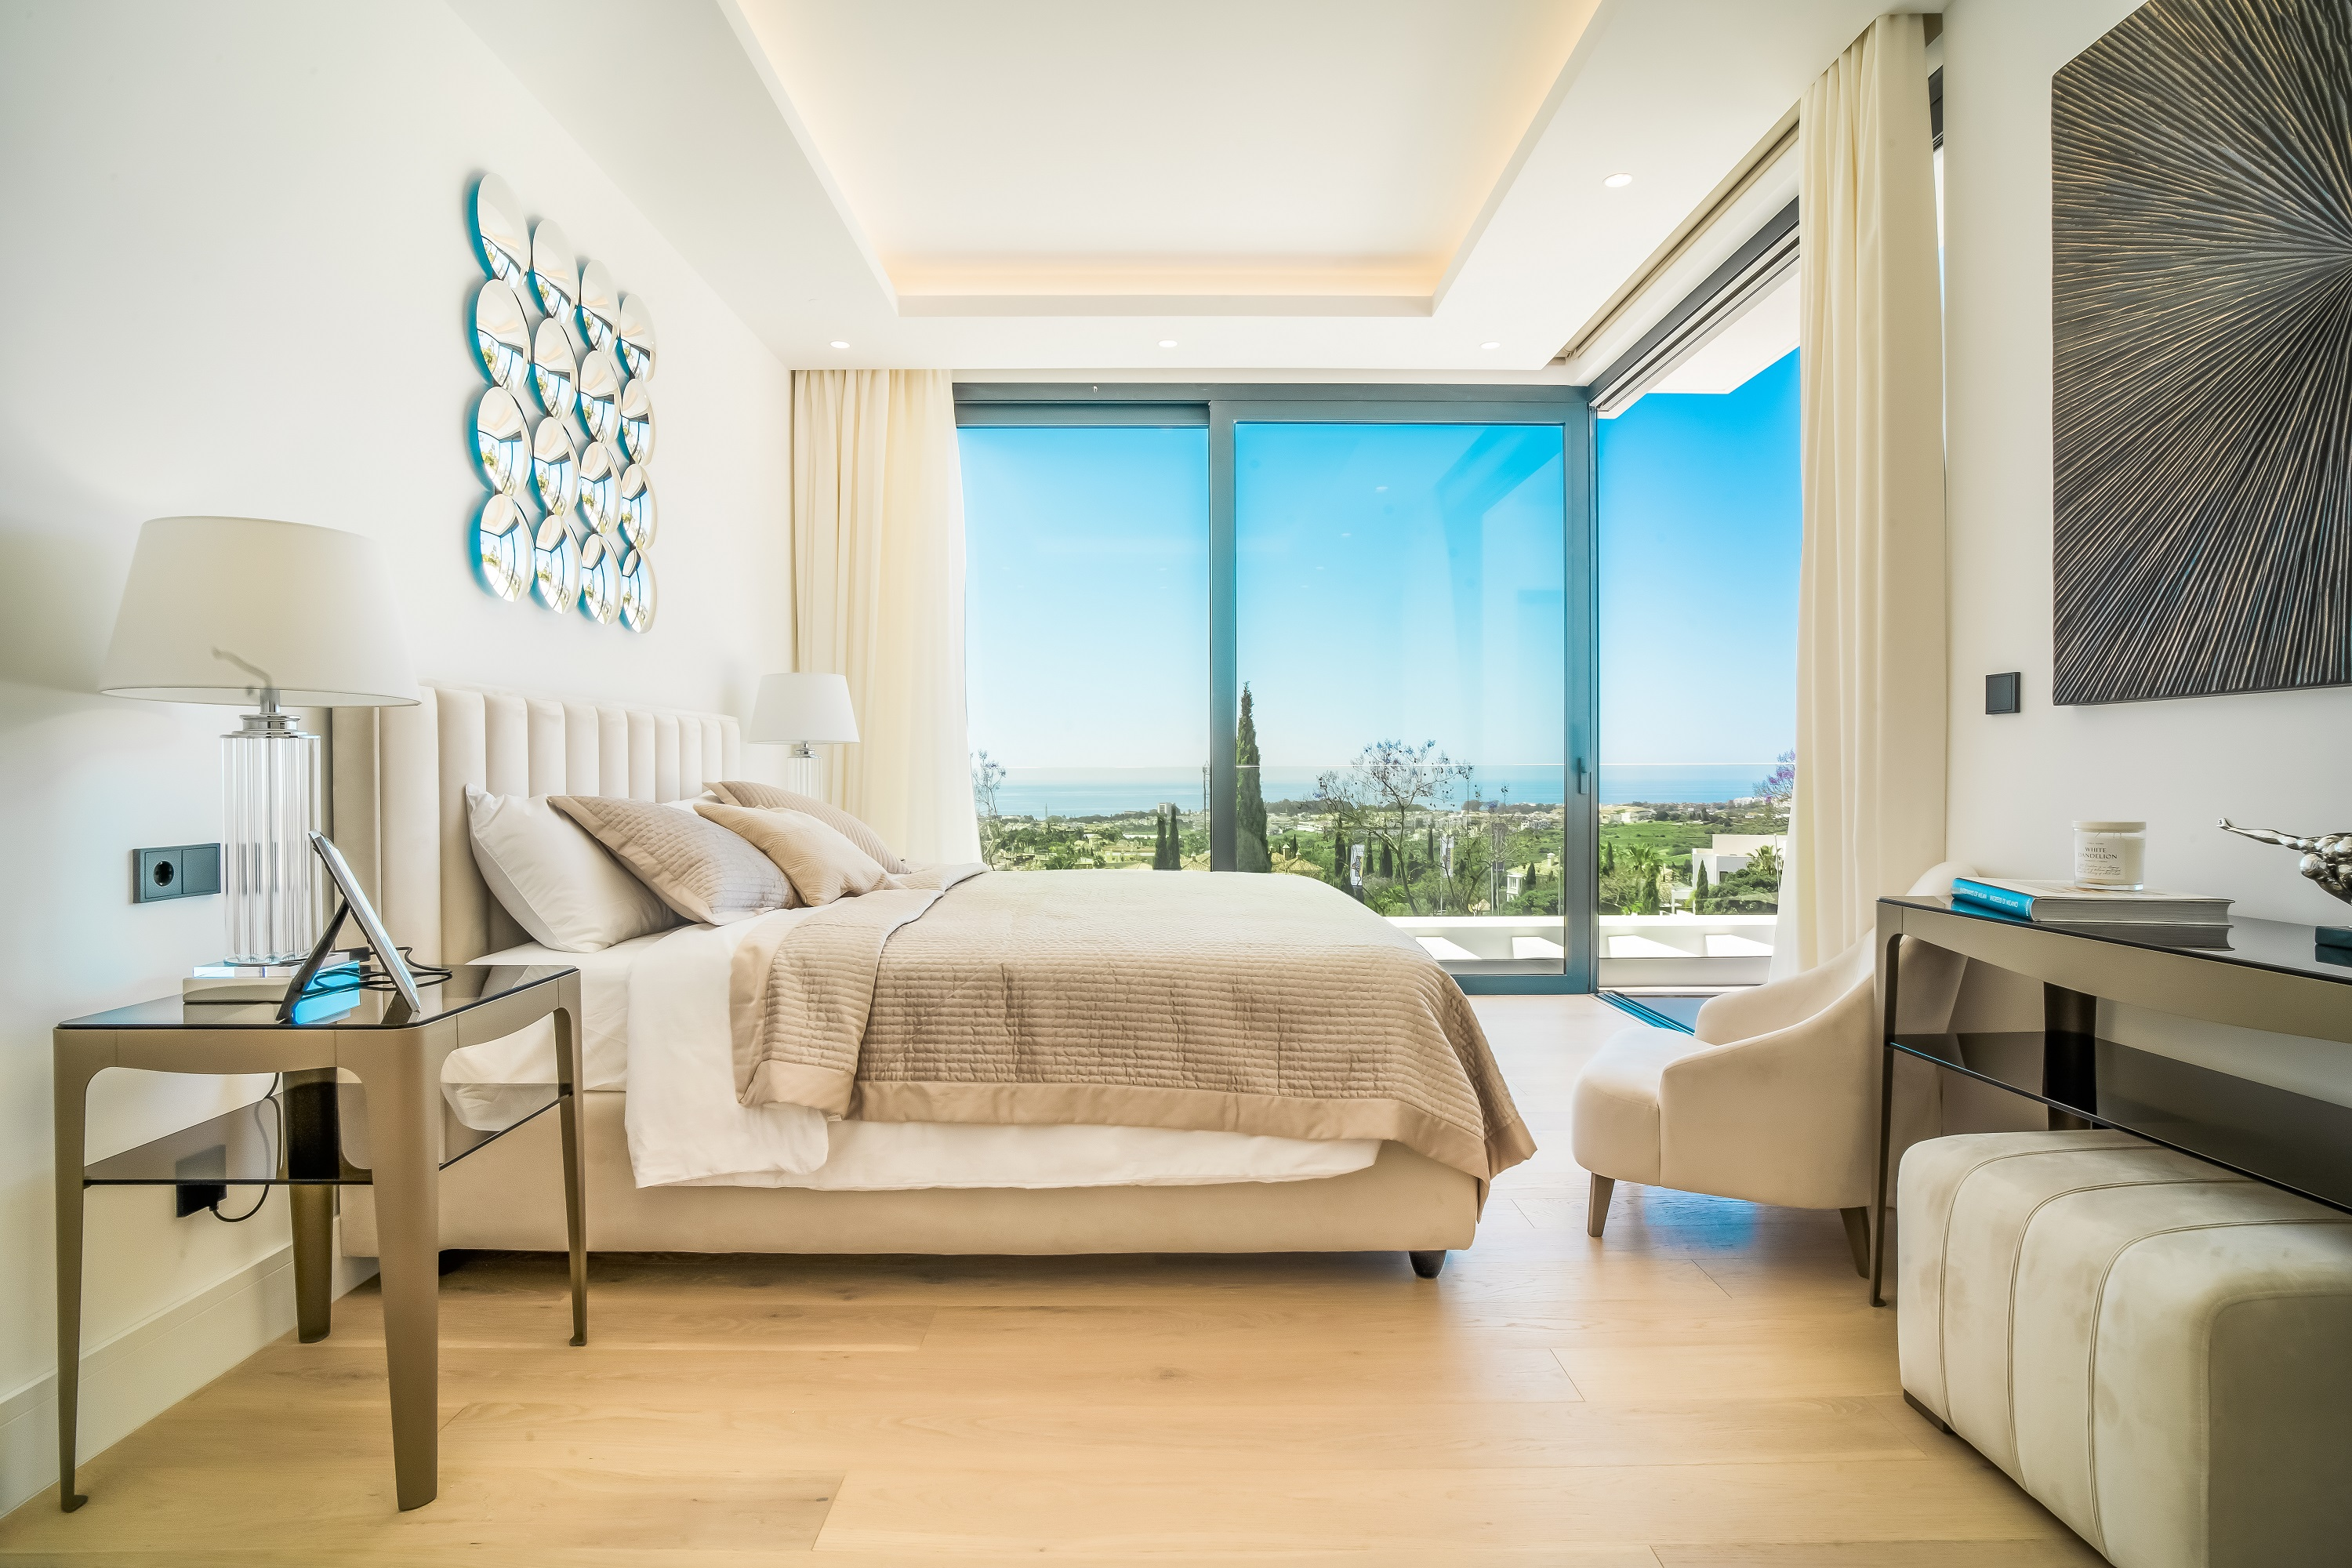 Property in Marbella. Online tour